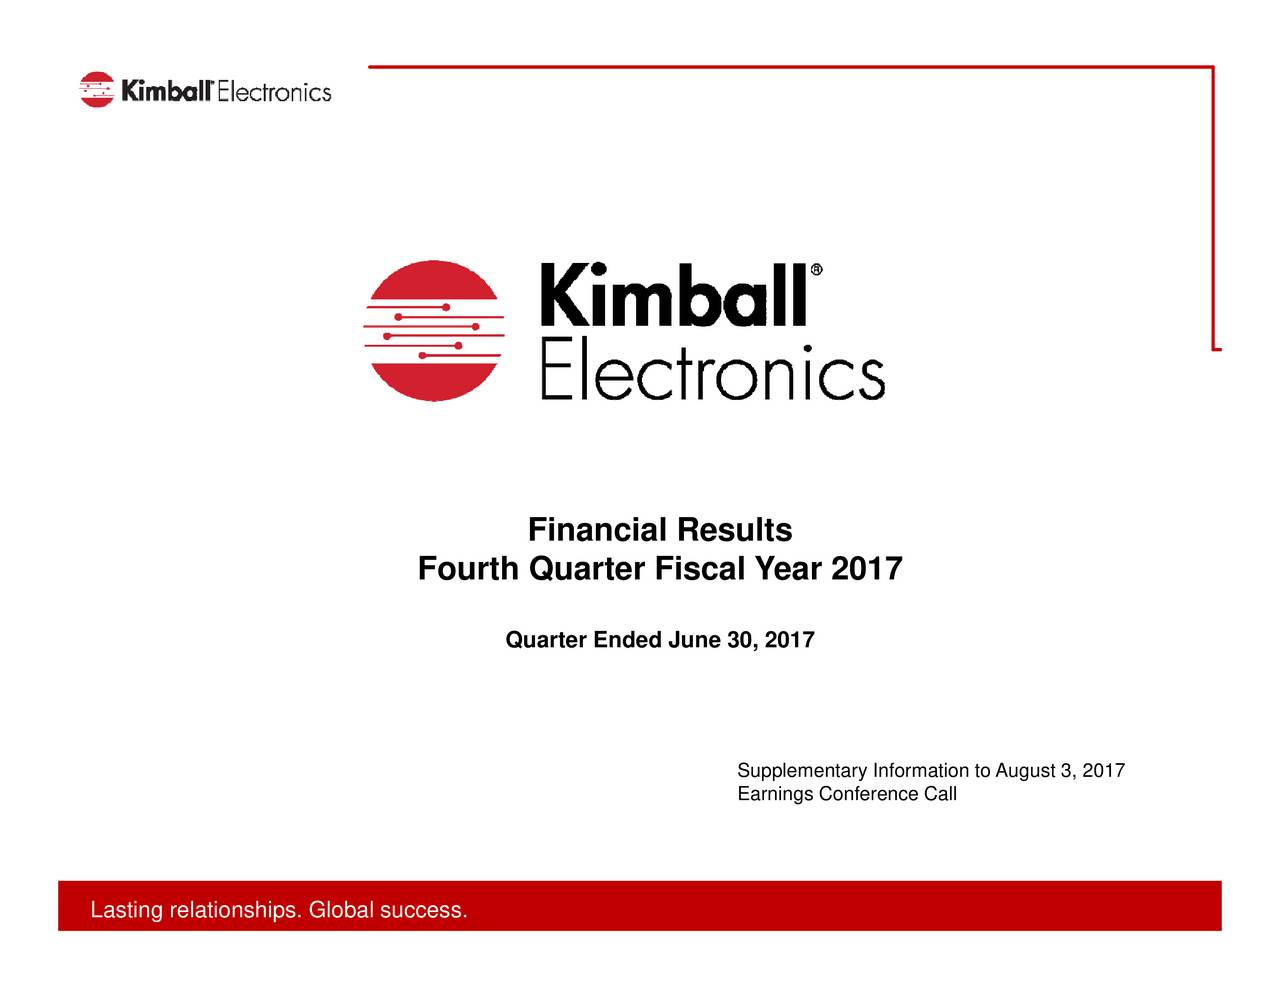 Financial Results Quarter Ended June 30, 2017 Fourth Quarter Fiscal Year 2017 Lasting relationships. Global success.